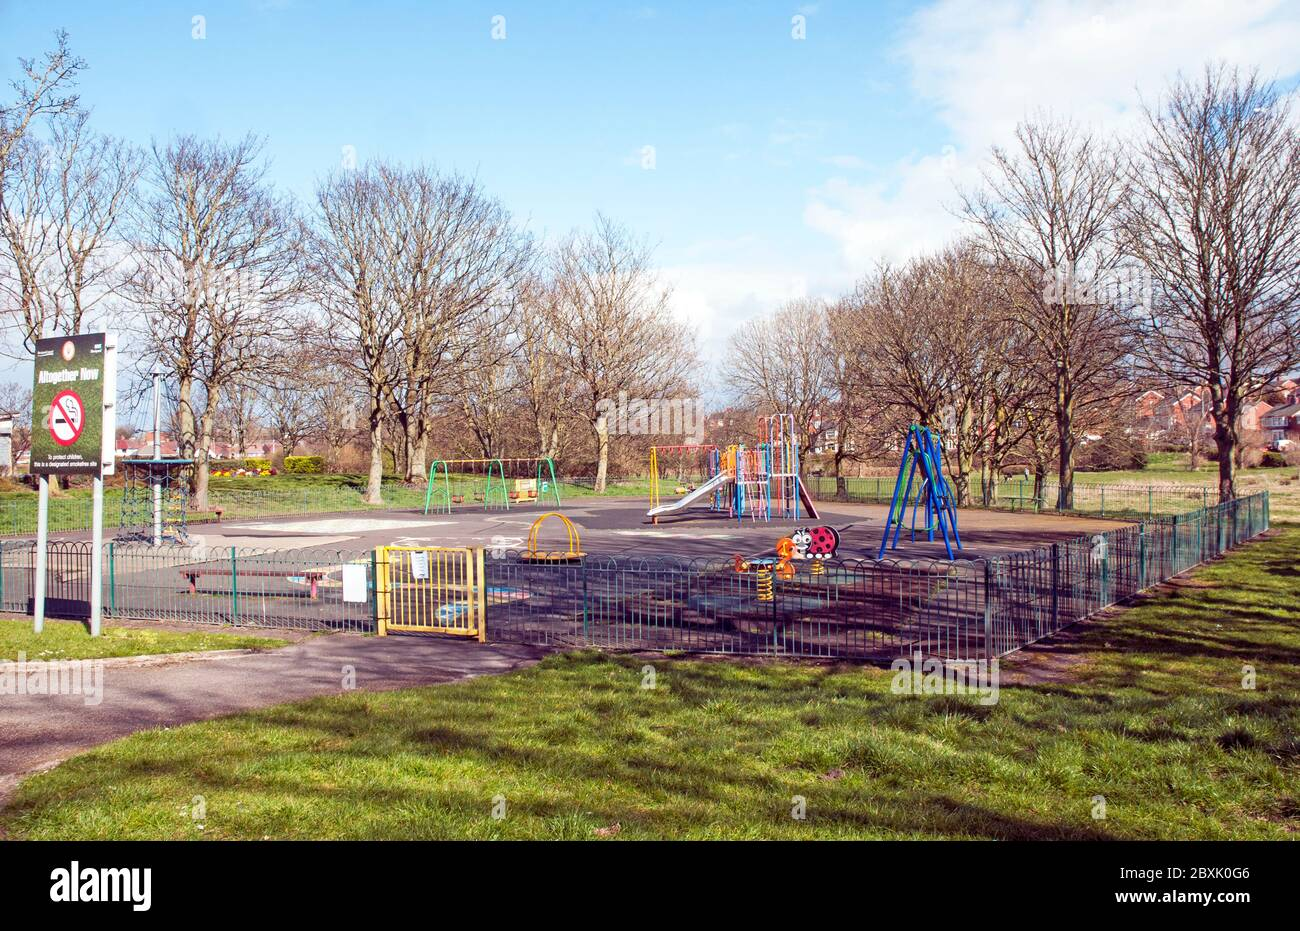 Childrens playground closed and deserted due to being locked down because of Corona virus covid 19. Kingscote Park Blackpool Lancashire England UK Stock Photo